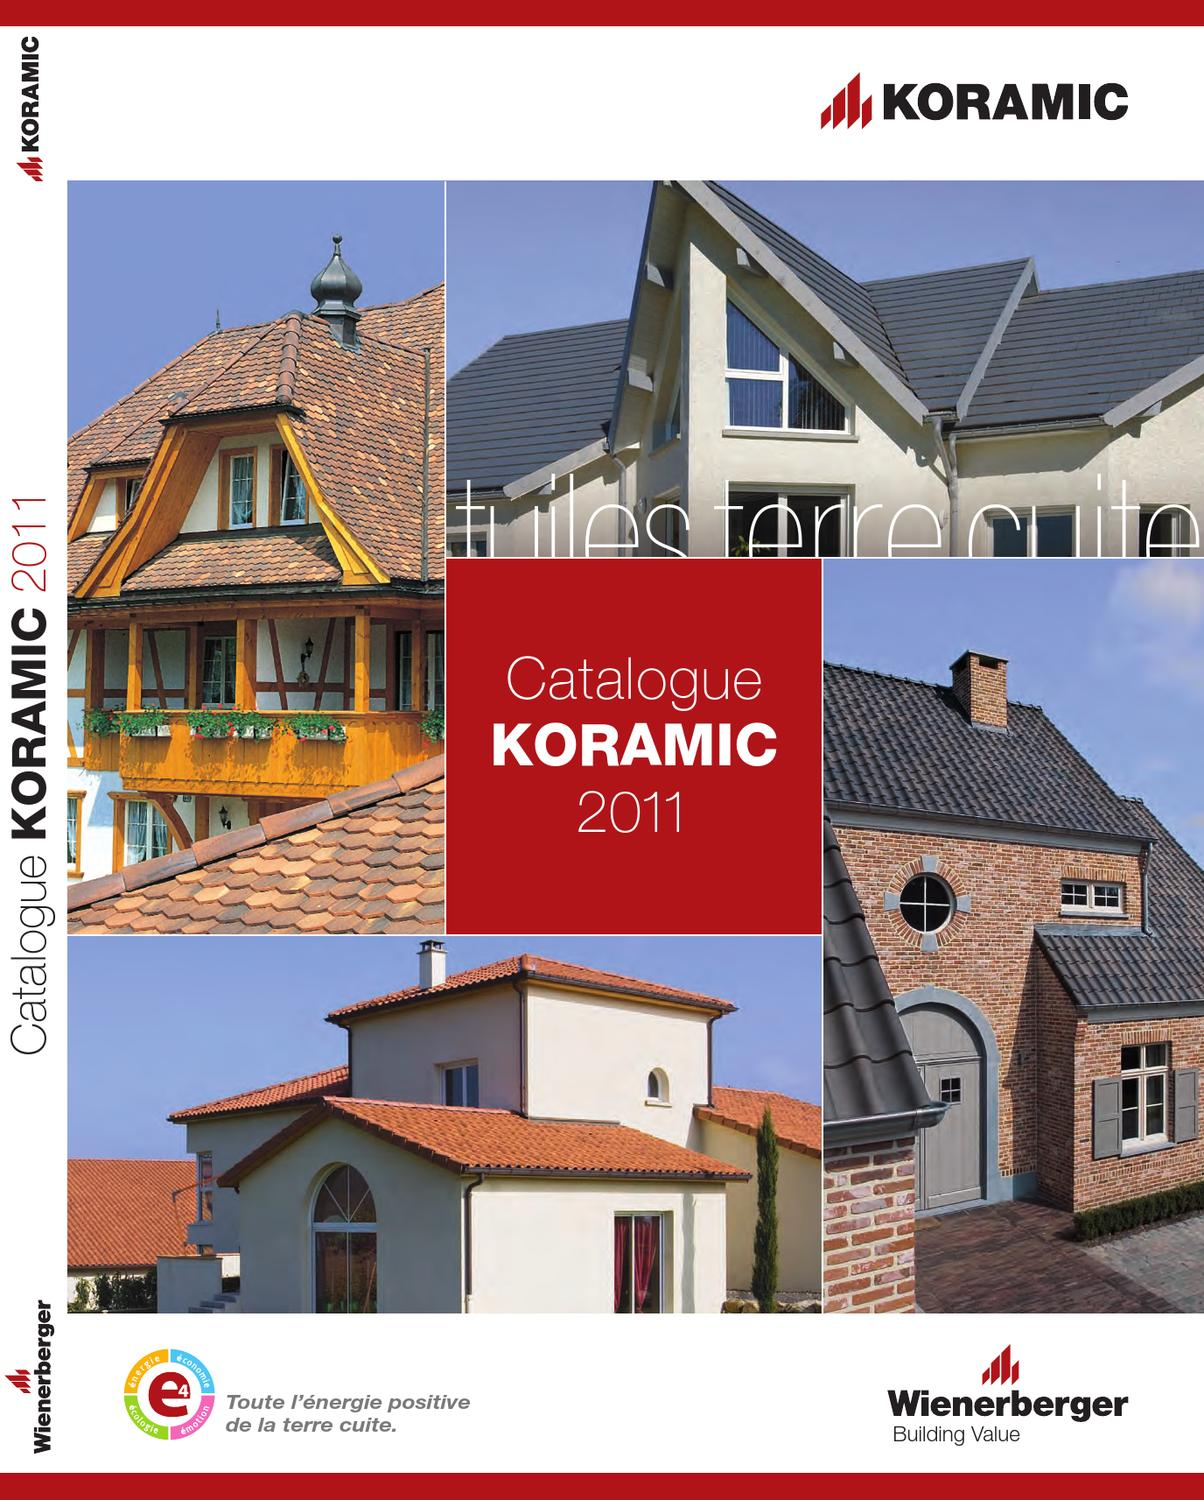 catalogue g n ral koramic by wienerberger ag issuu. Black Bedroom Furniture Sets. Home Design Ideas